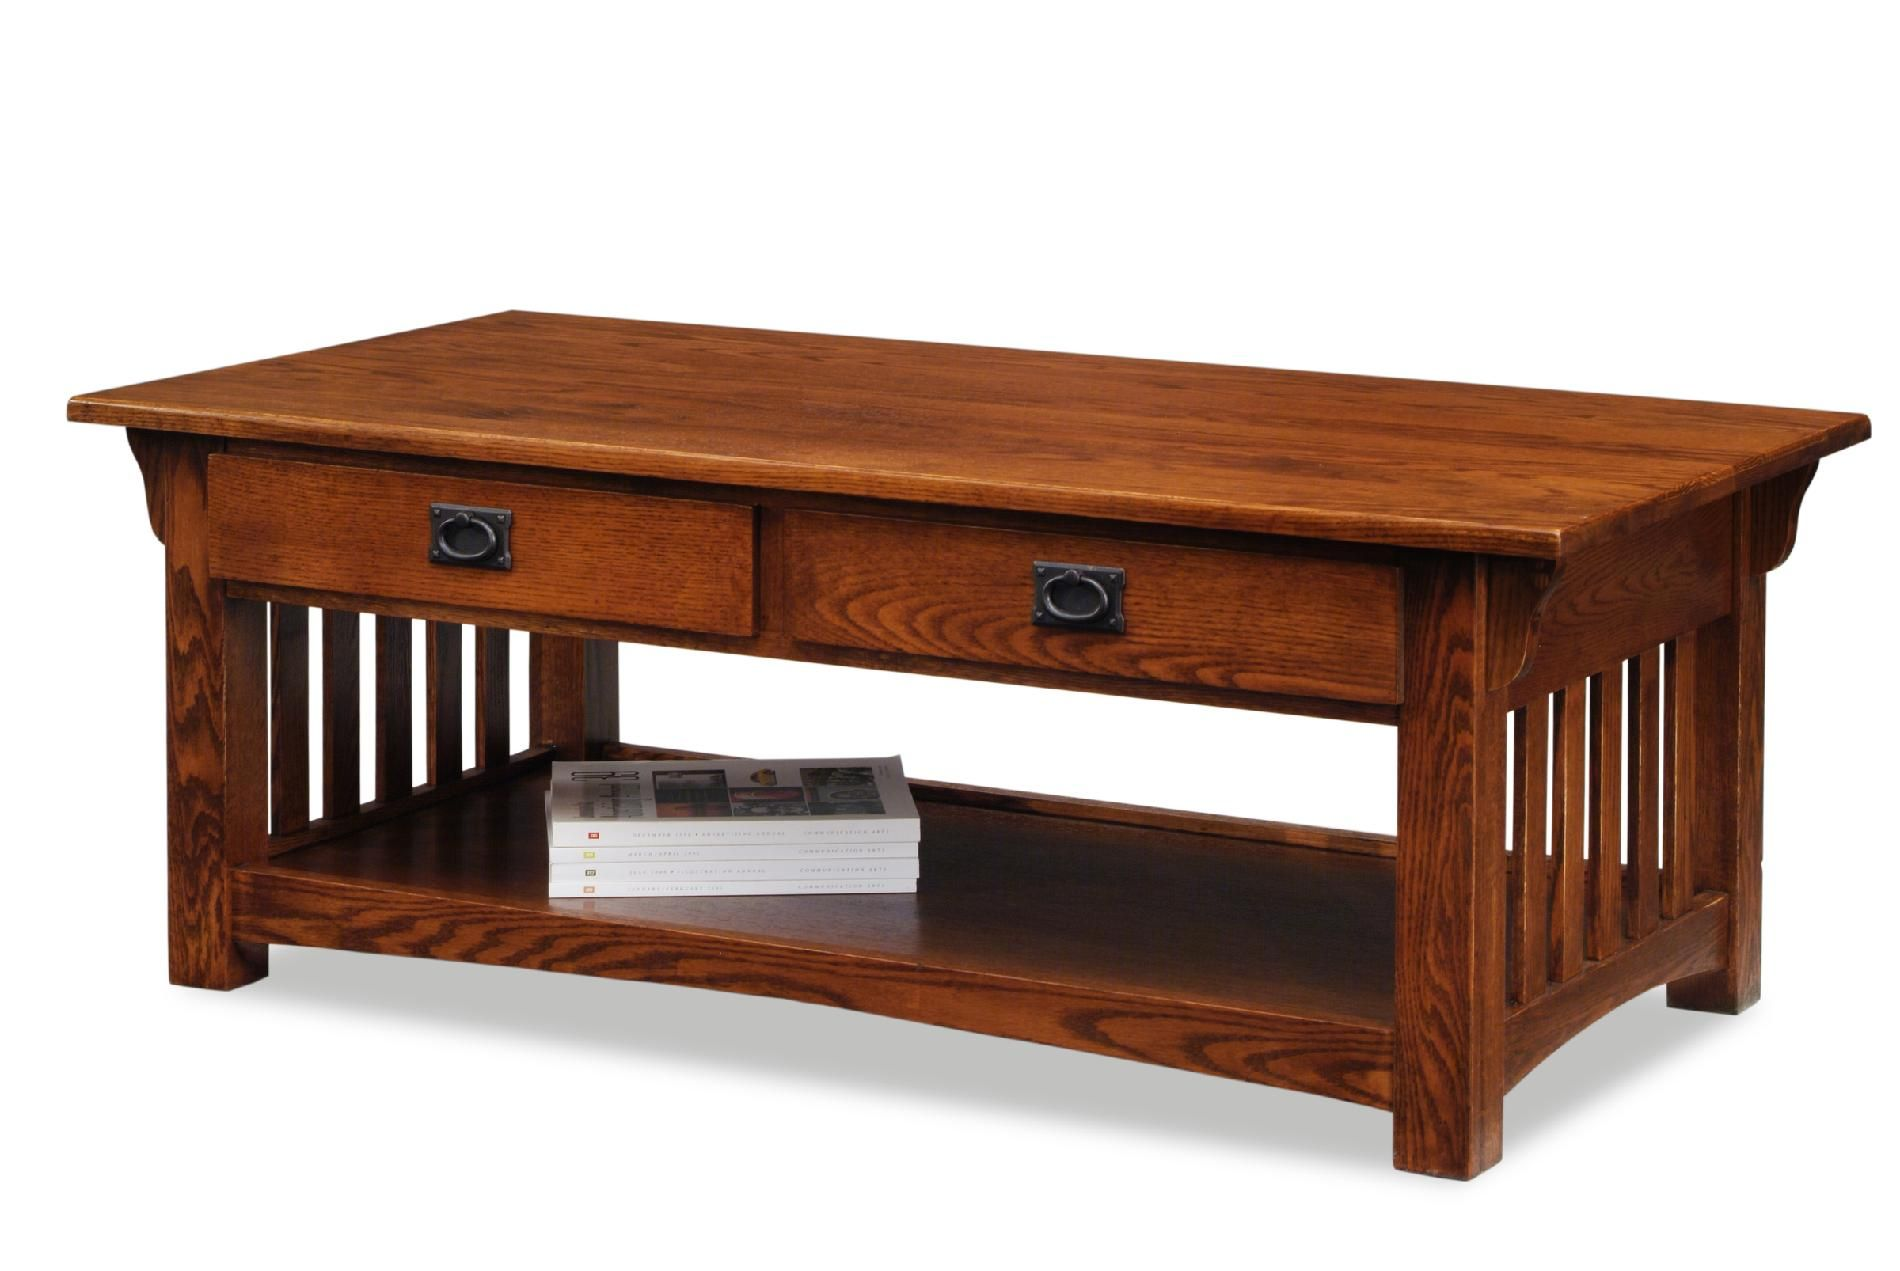 Leick Mission Coffee Table With Drawers And Shelf Medium Oak - Mission style coffee table with storage